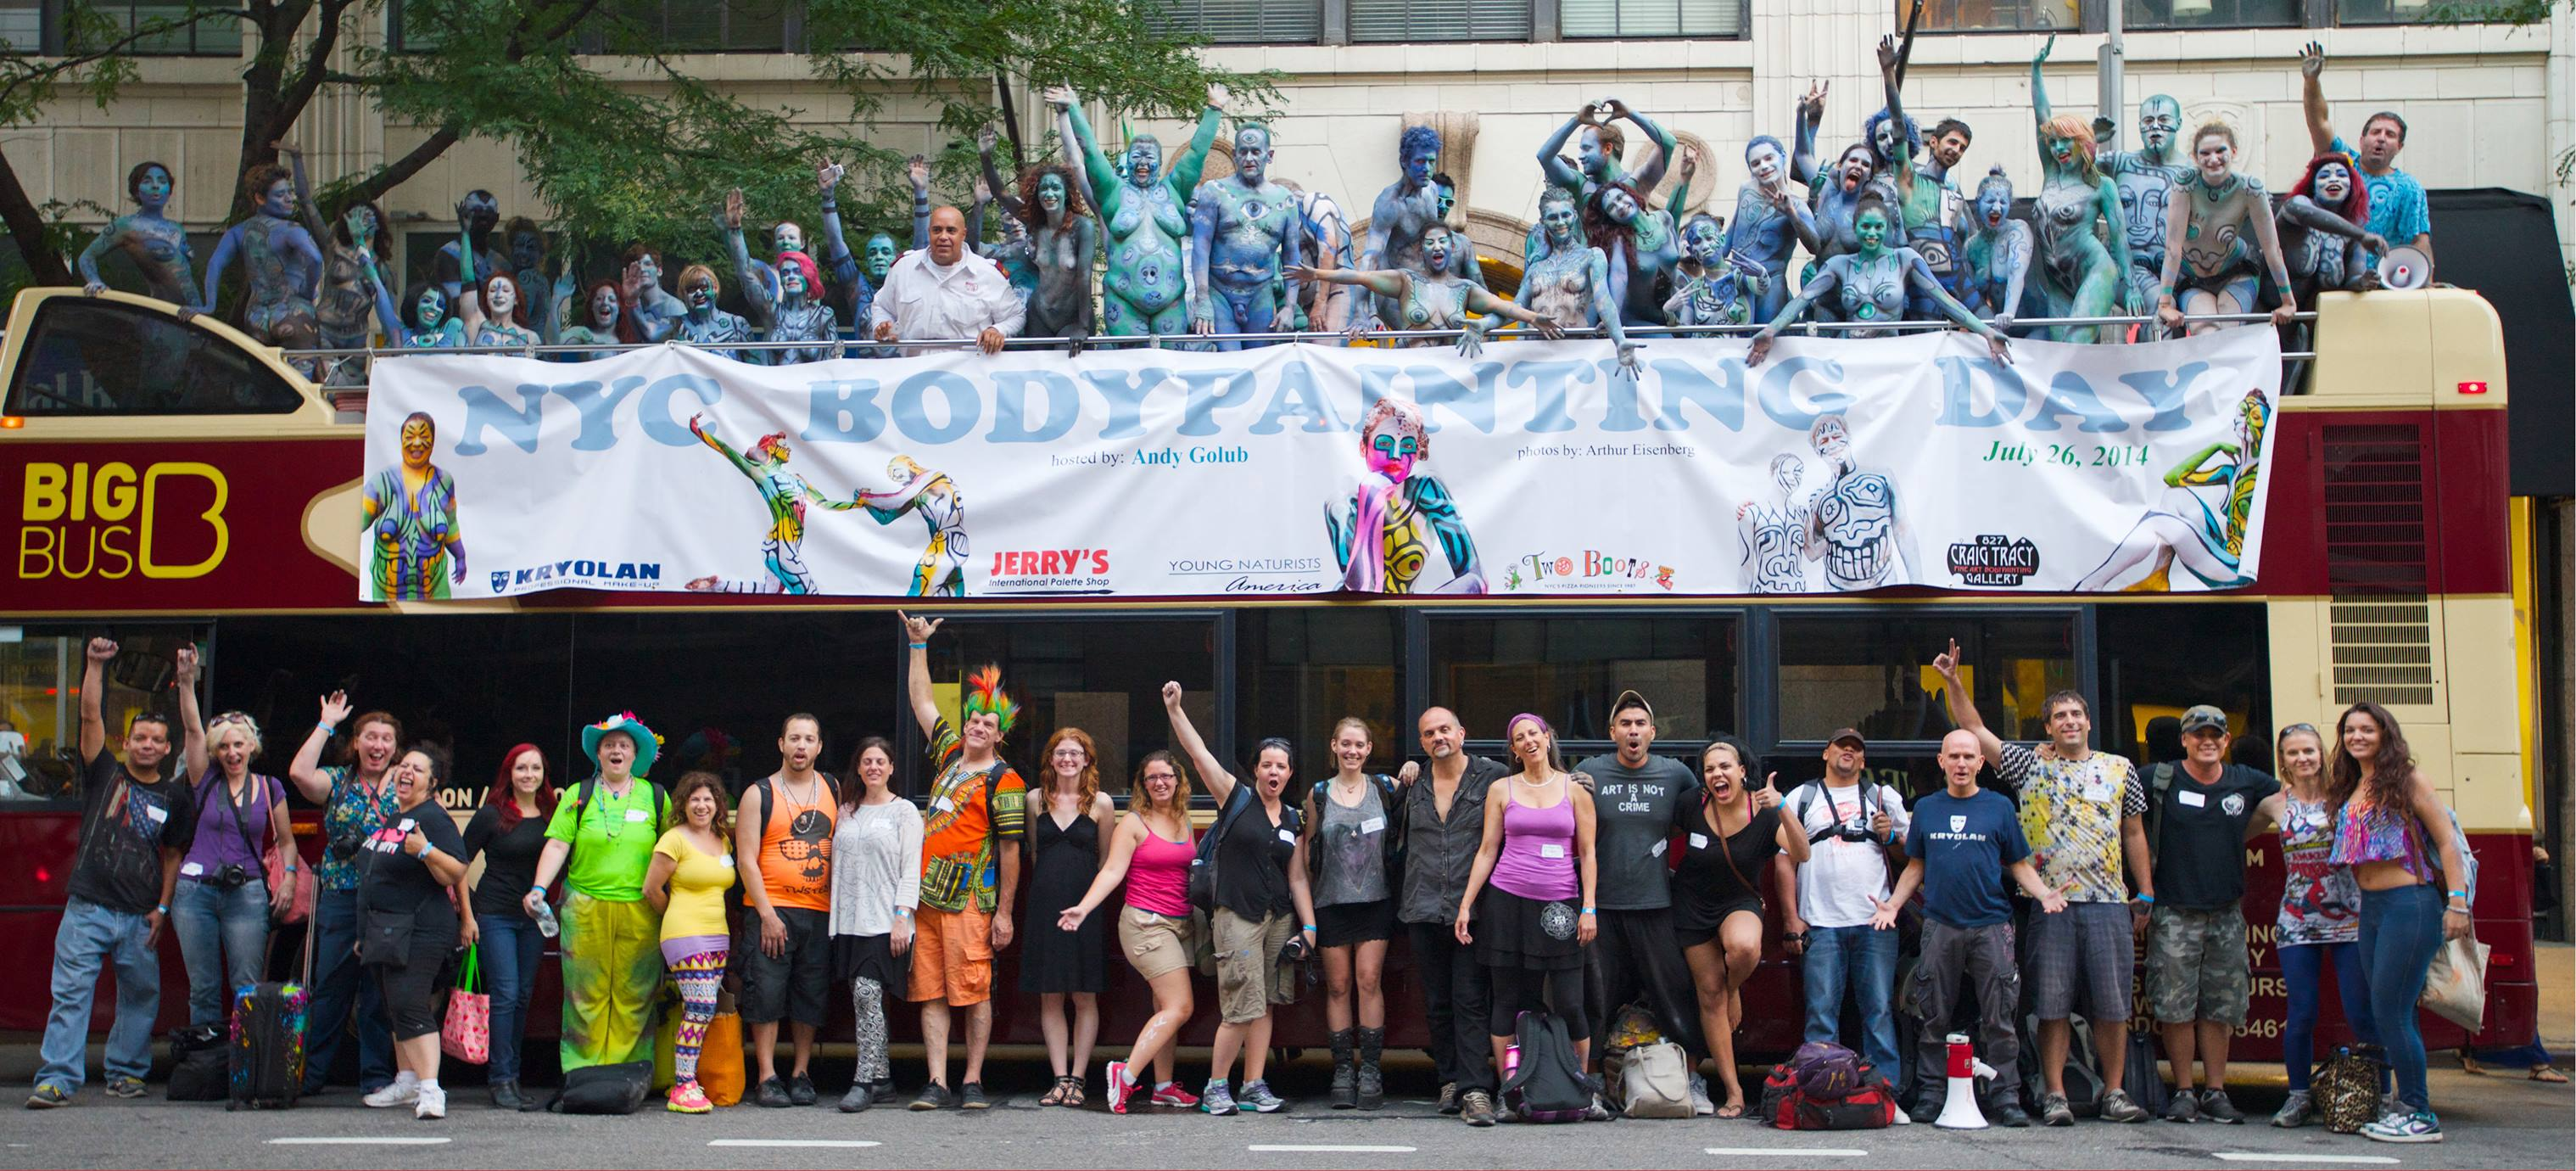 NYC Bodypainting Day 2014 - Bodypaint.me